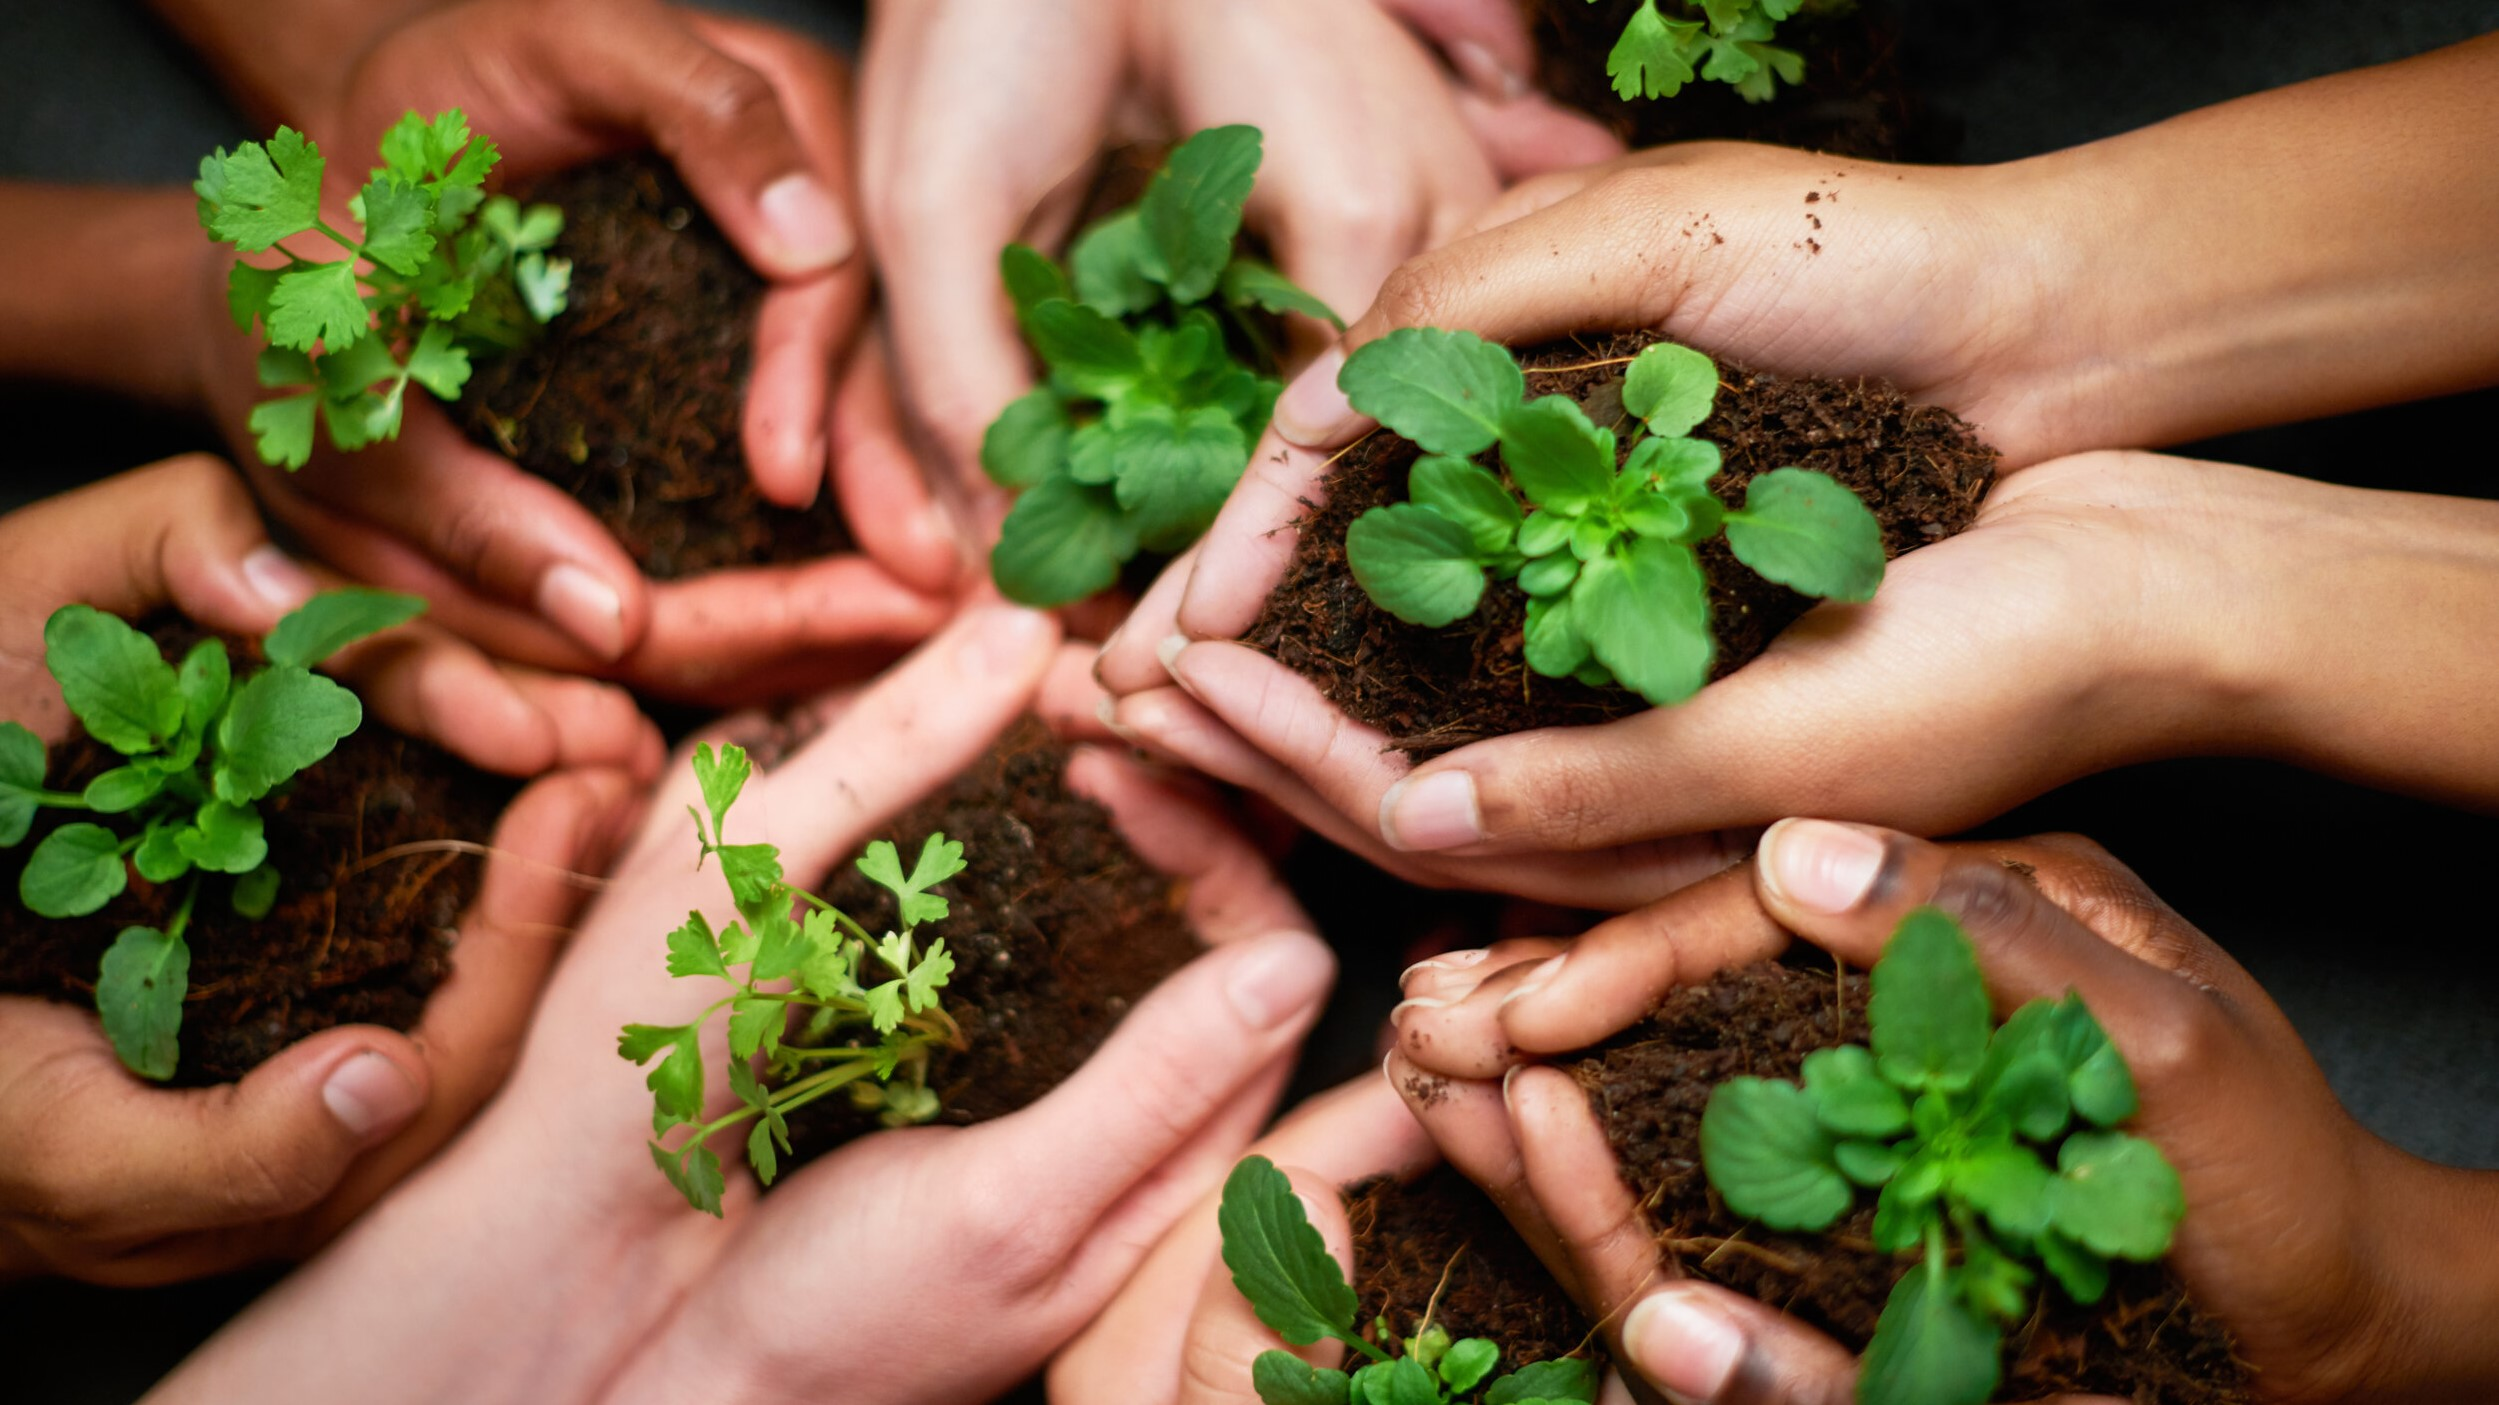 Photo of hands holding seedlings